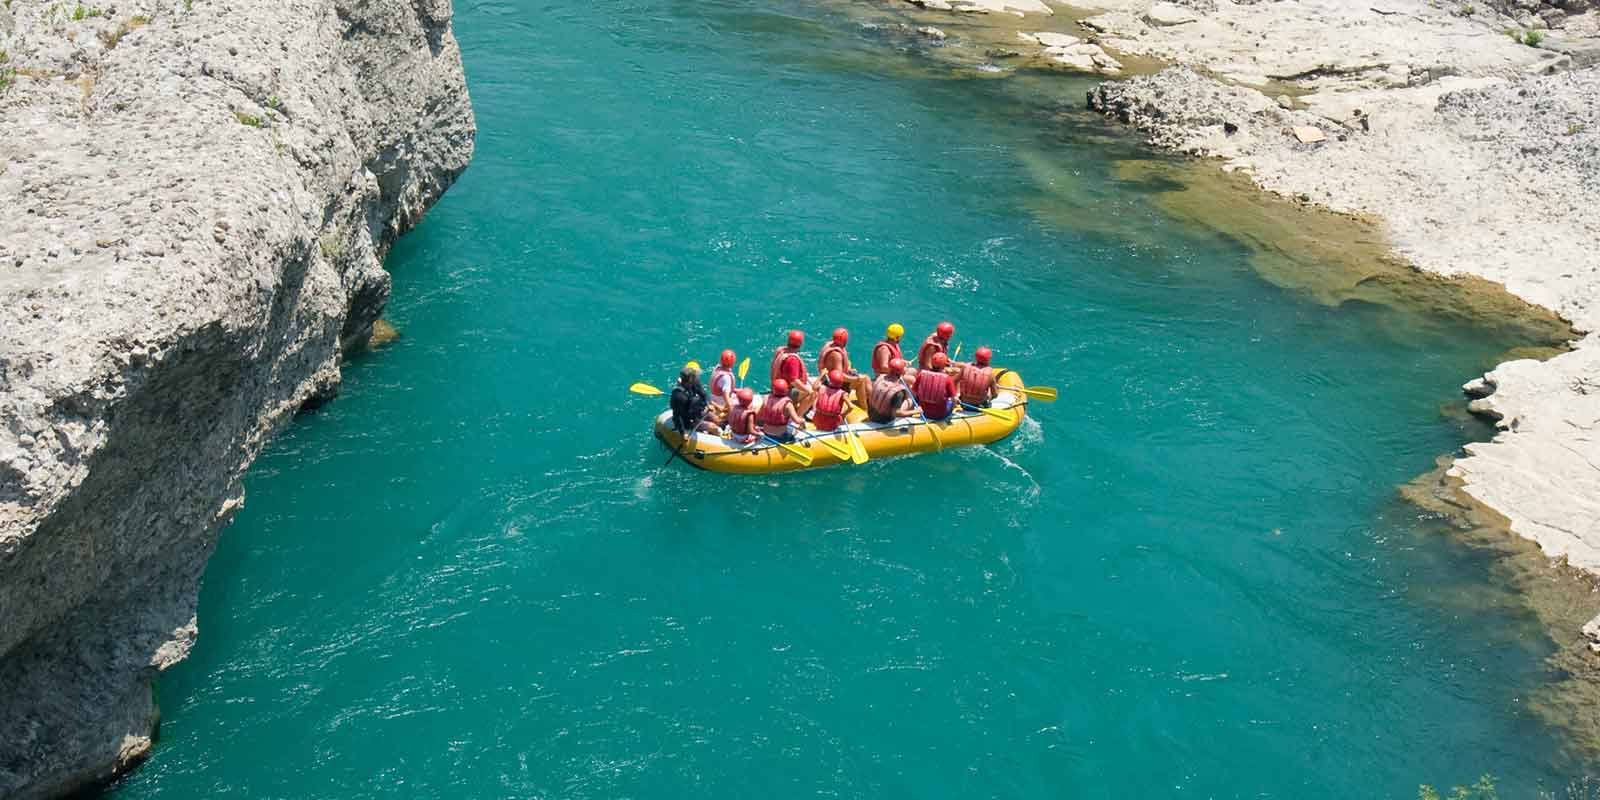 Aerial view of group rafting in a turquoise river with rocky cliffs either side